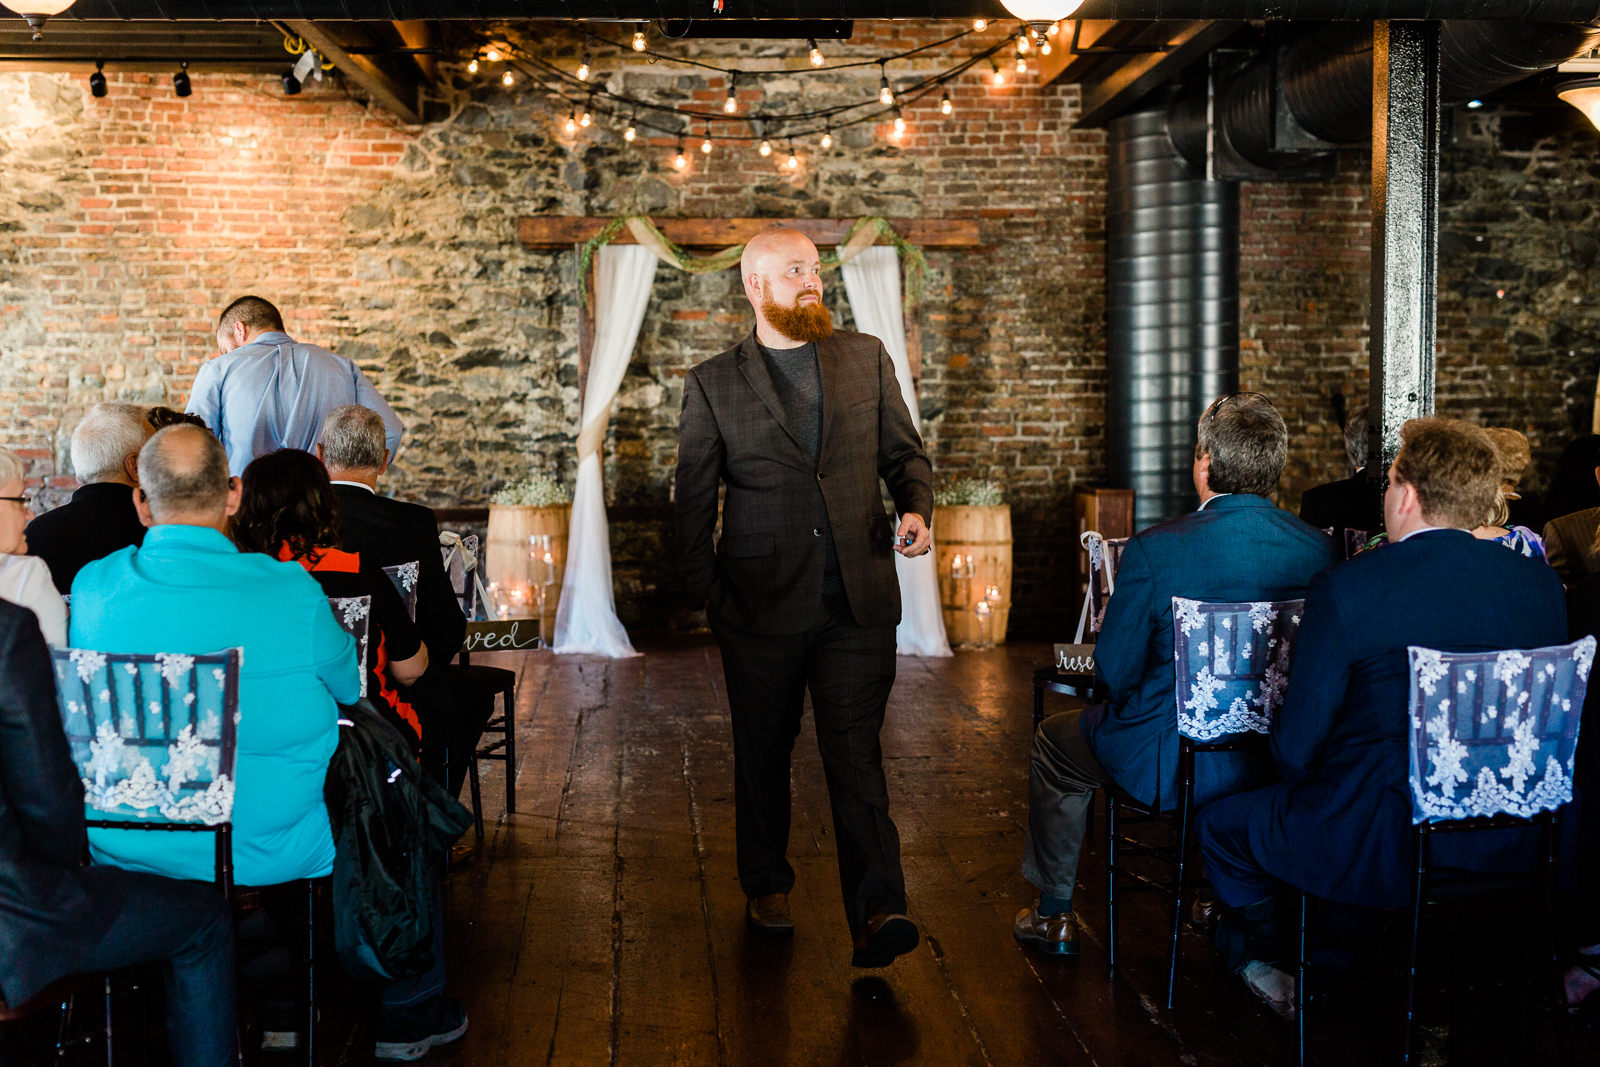 0031st-johns-wedding-photographer-caitlin-adam-yellowbelly.jpg